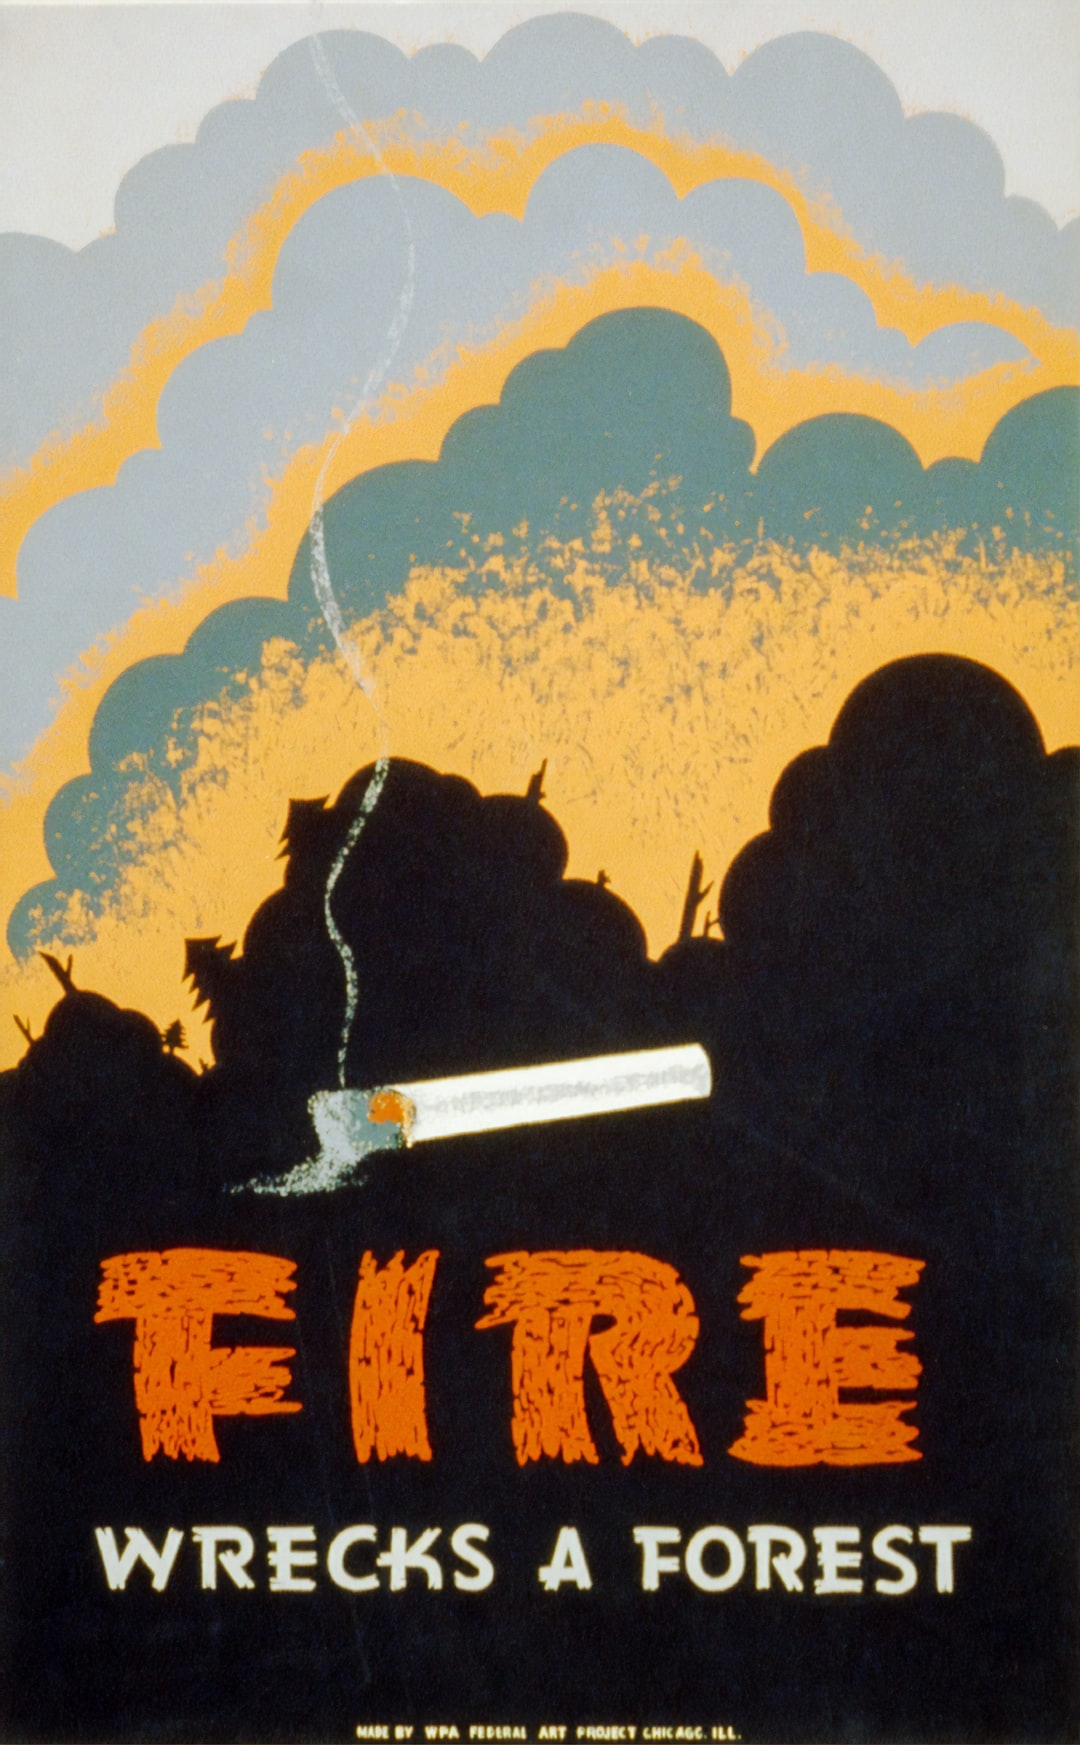 Fire Wrecks a Forest. Poster for the Chicago, Ill.: WPA Federal Art Project, [between 1936 and 1939]. From the Work Projects Administration Poster Collection. Library of Congress Prints & Photographs Division.   https://www.loc.gov/item/98508191/